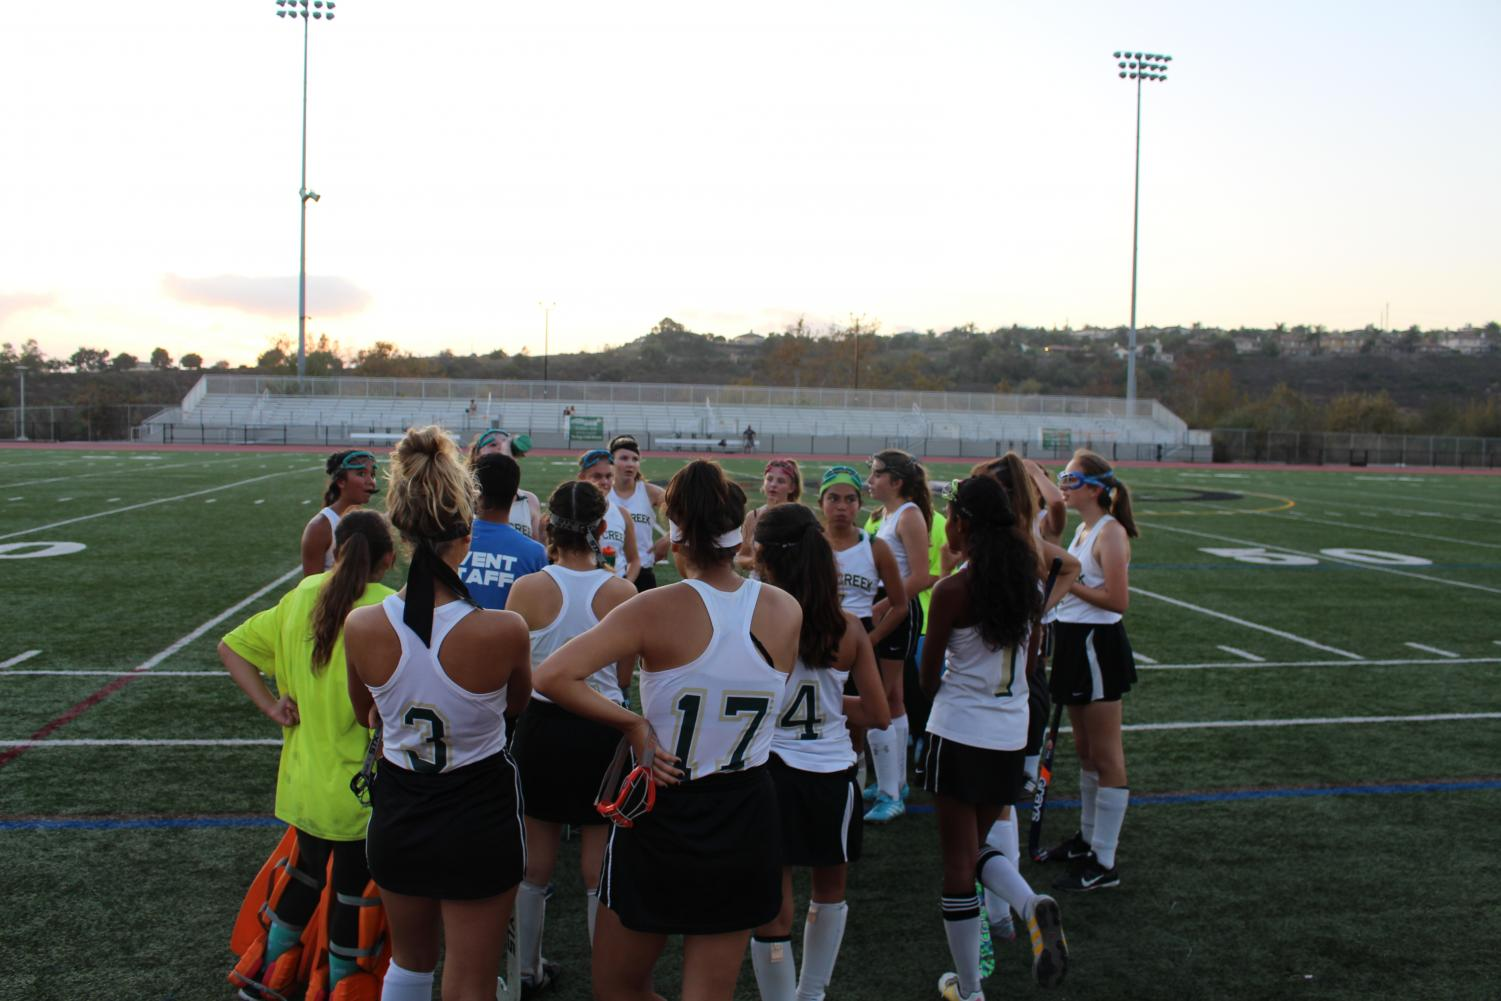 Girls field hockey team huddles up before a game.